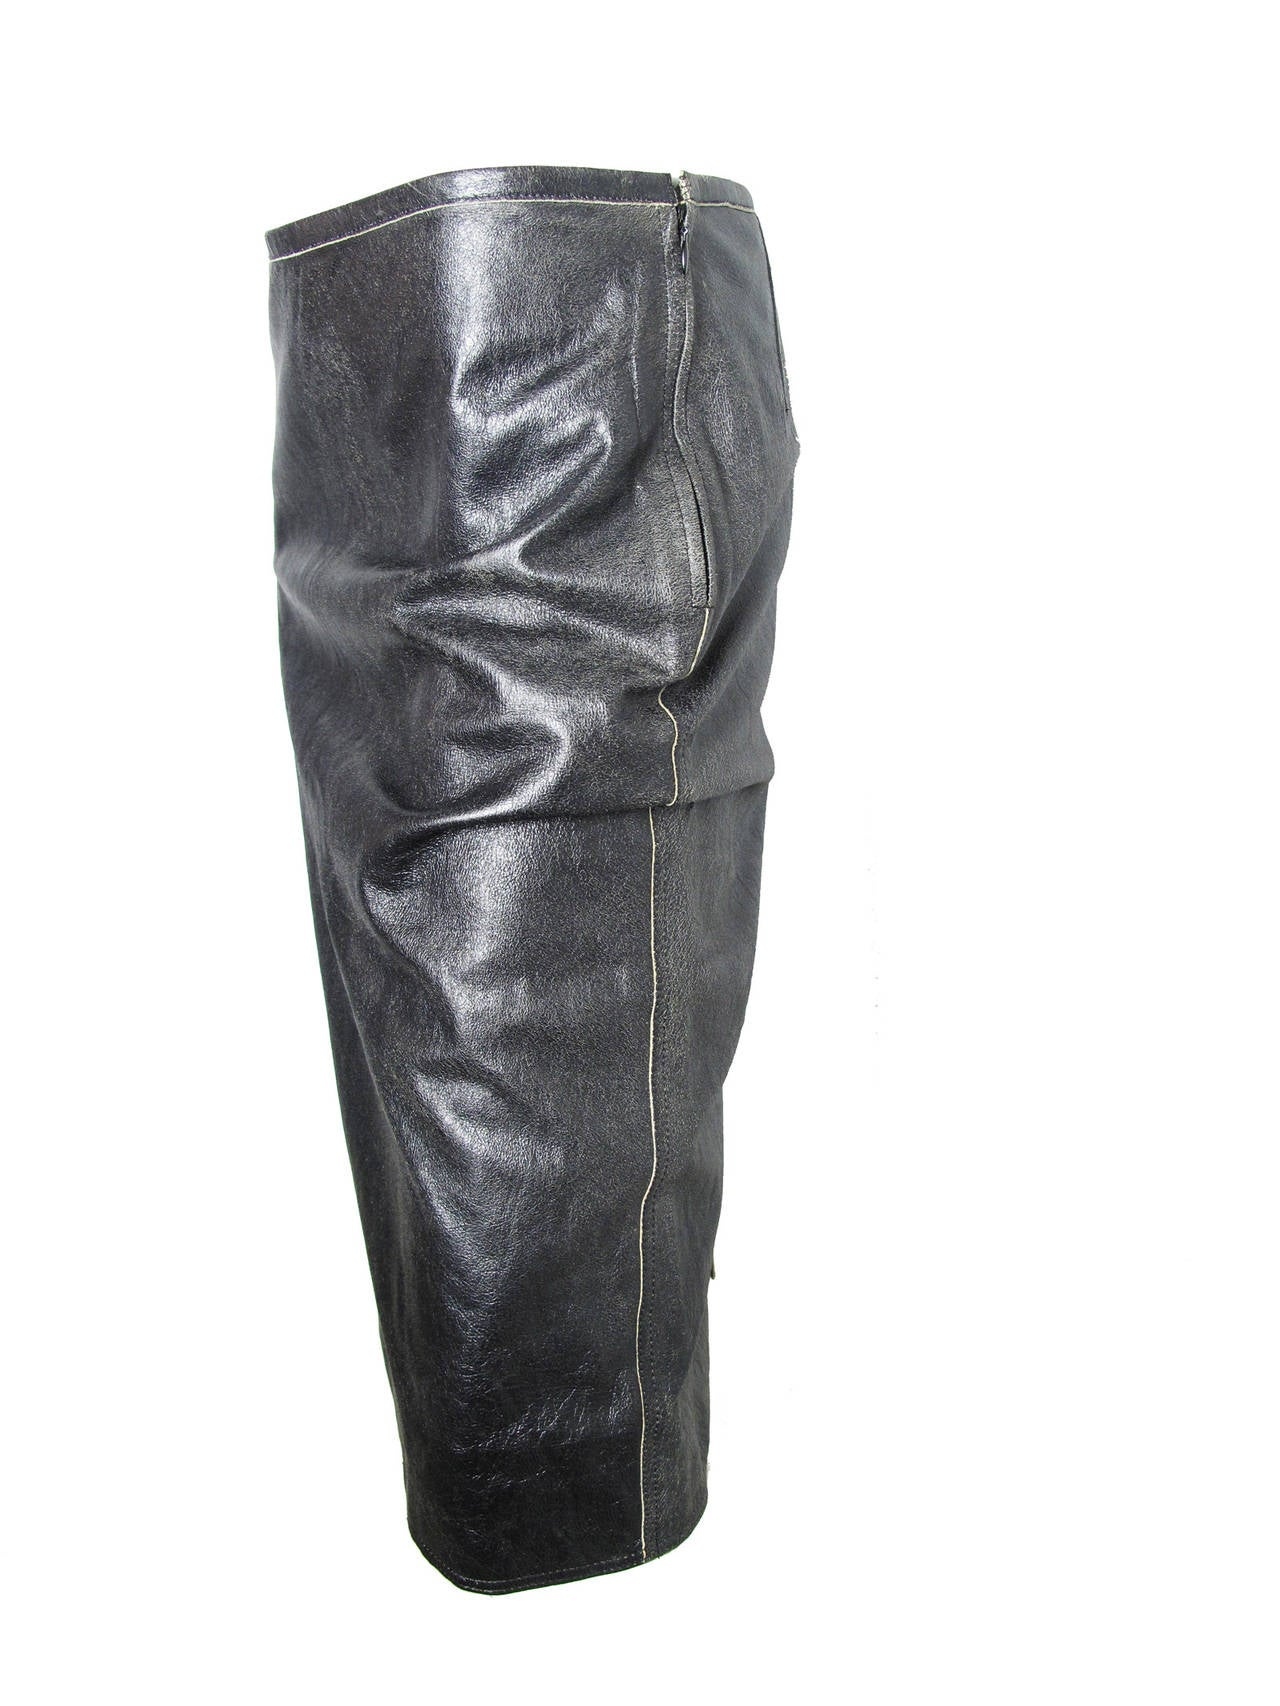 Jean Paul Gaultier Distressed Leather Skirt 3